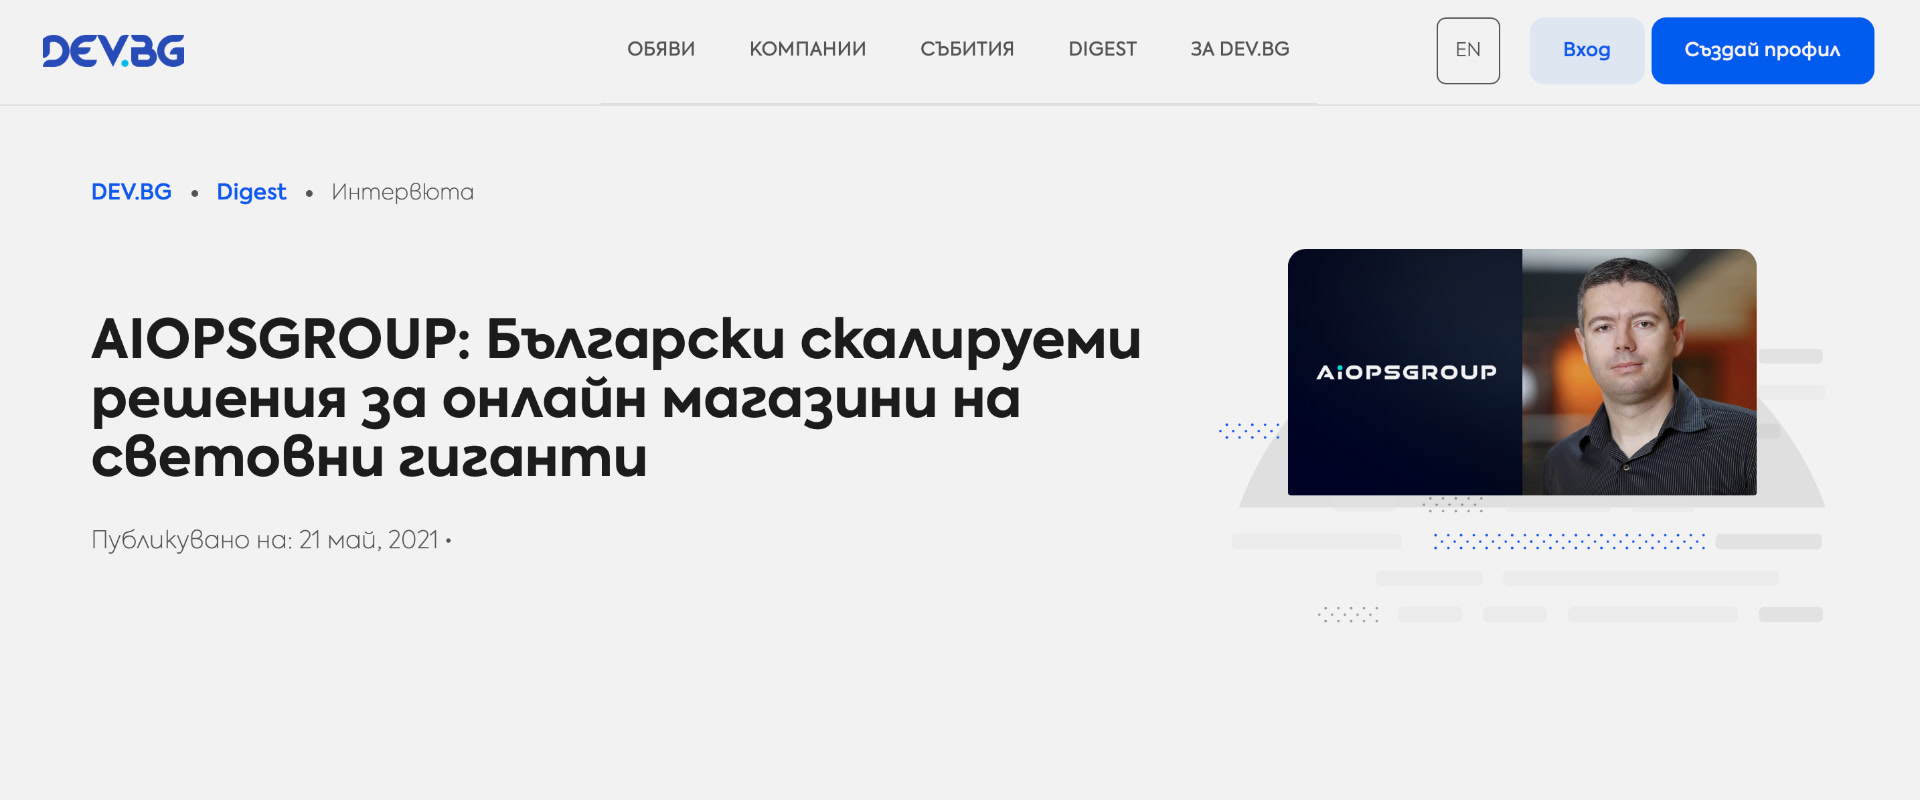 Bulgarian scalable solutions for online stores of global giants - dev.bg interview